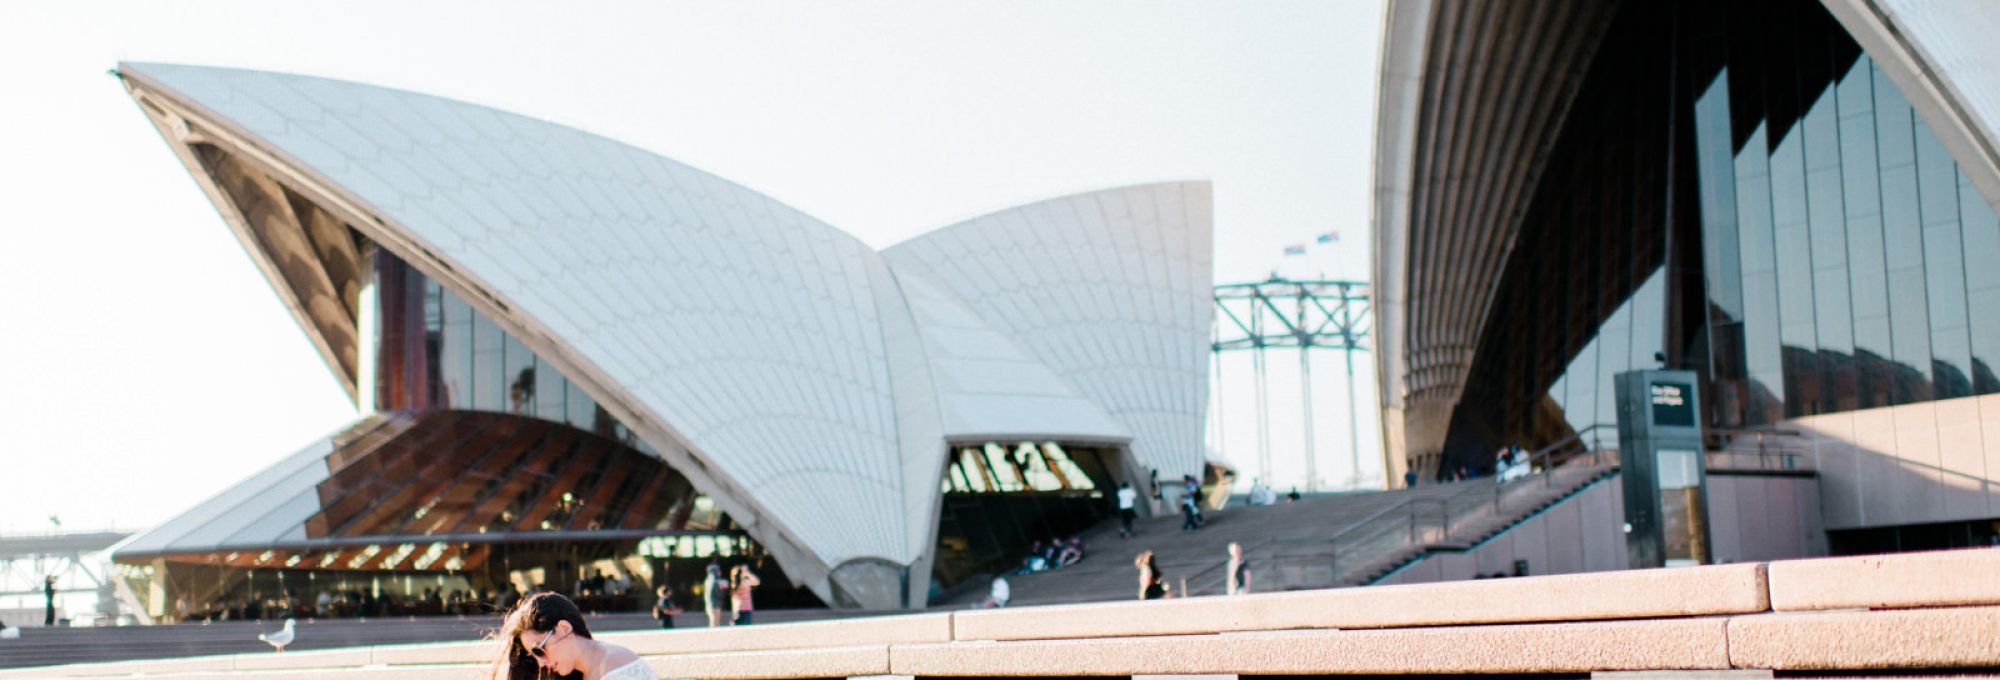 Sydney Opera House, sydney travel guide, what to do in sydney, summer outfit ideas, sydney bridge, off the shoulder bell sleeve crop top